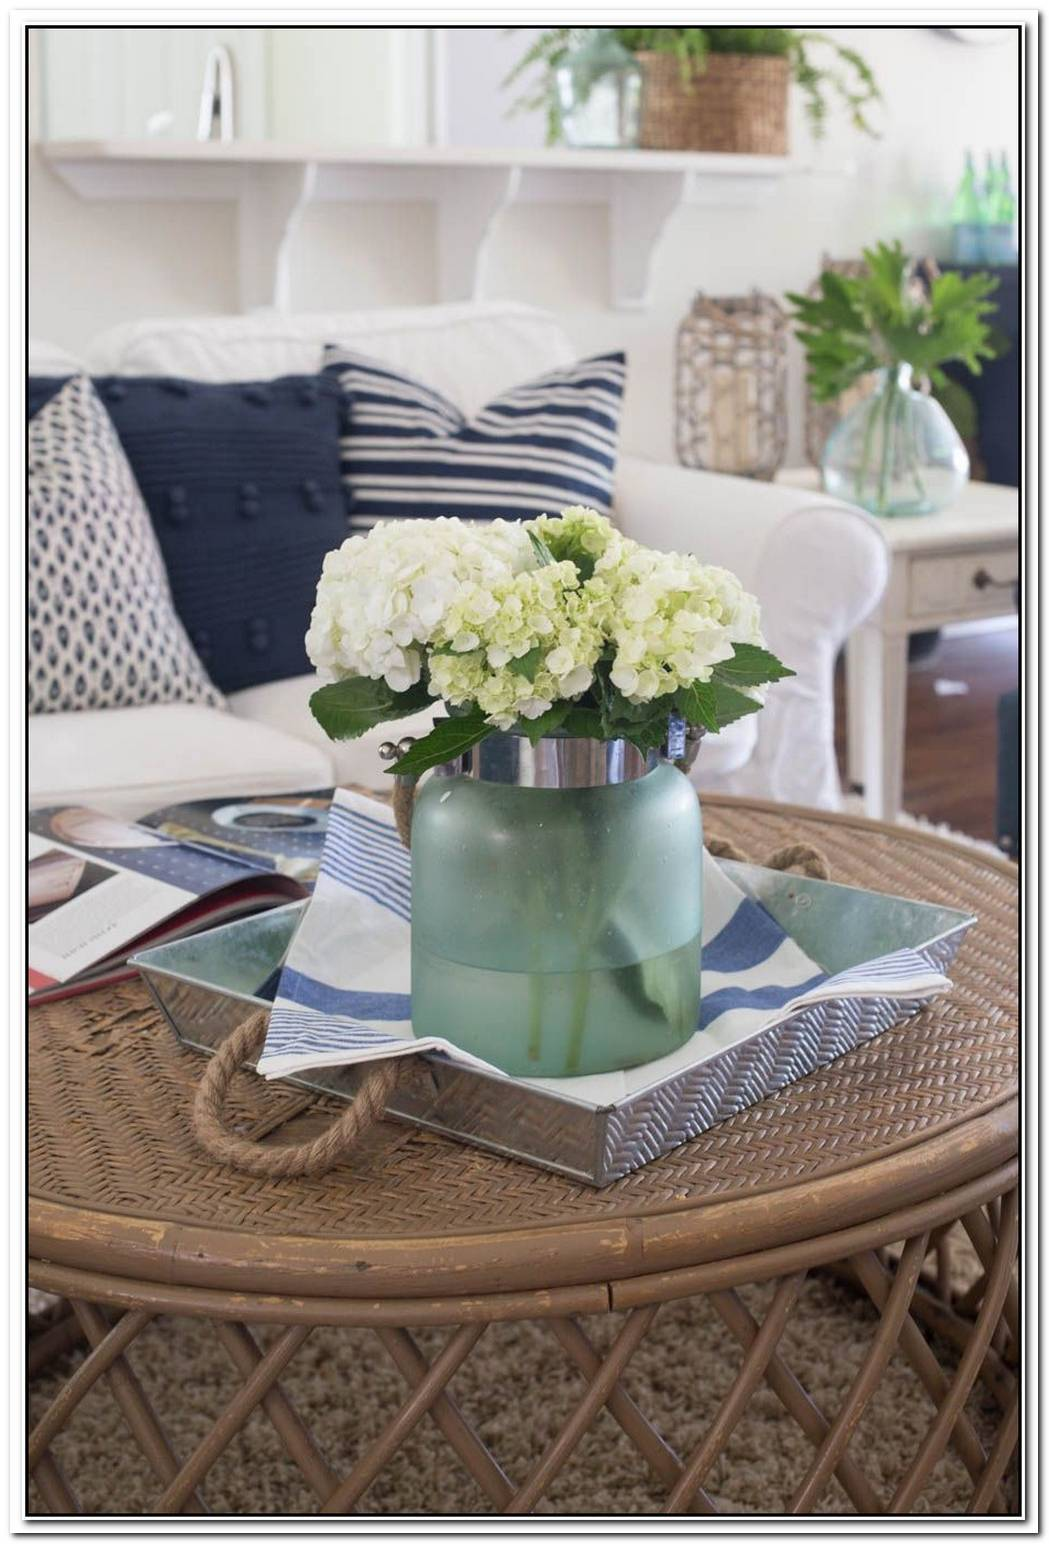 Summer Decorating Ideas With Flowers For Your Loft